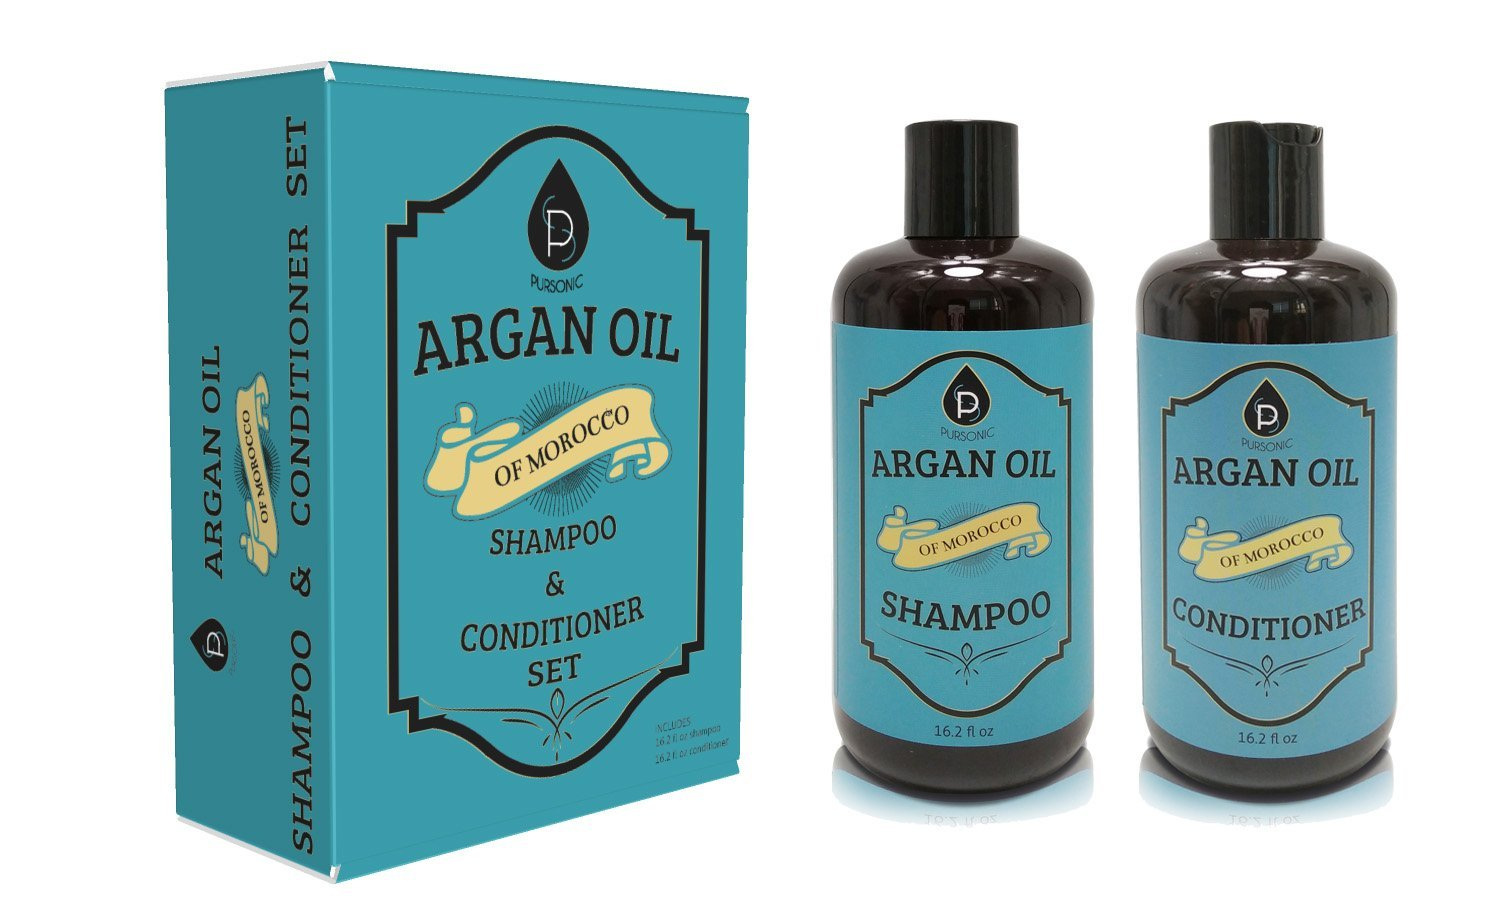 Pursonic organic moroccan argan oil repair shampoo & conditioner set (2x16 oz)